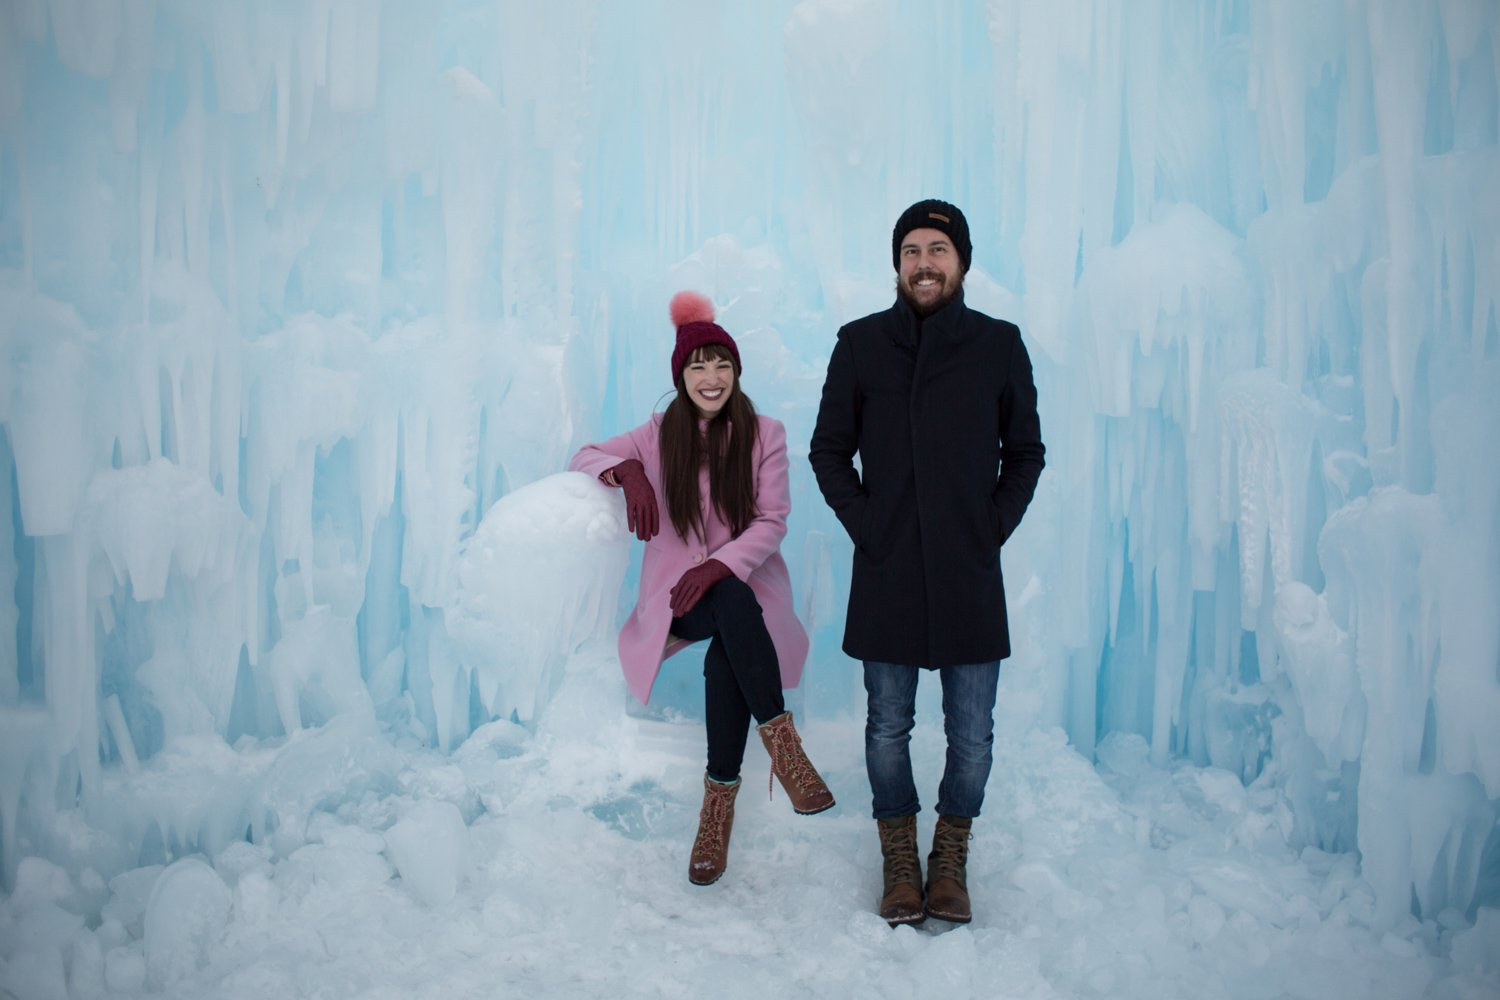 midway-ice-castles-zermont-homestead-7